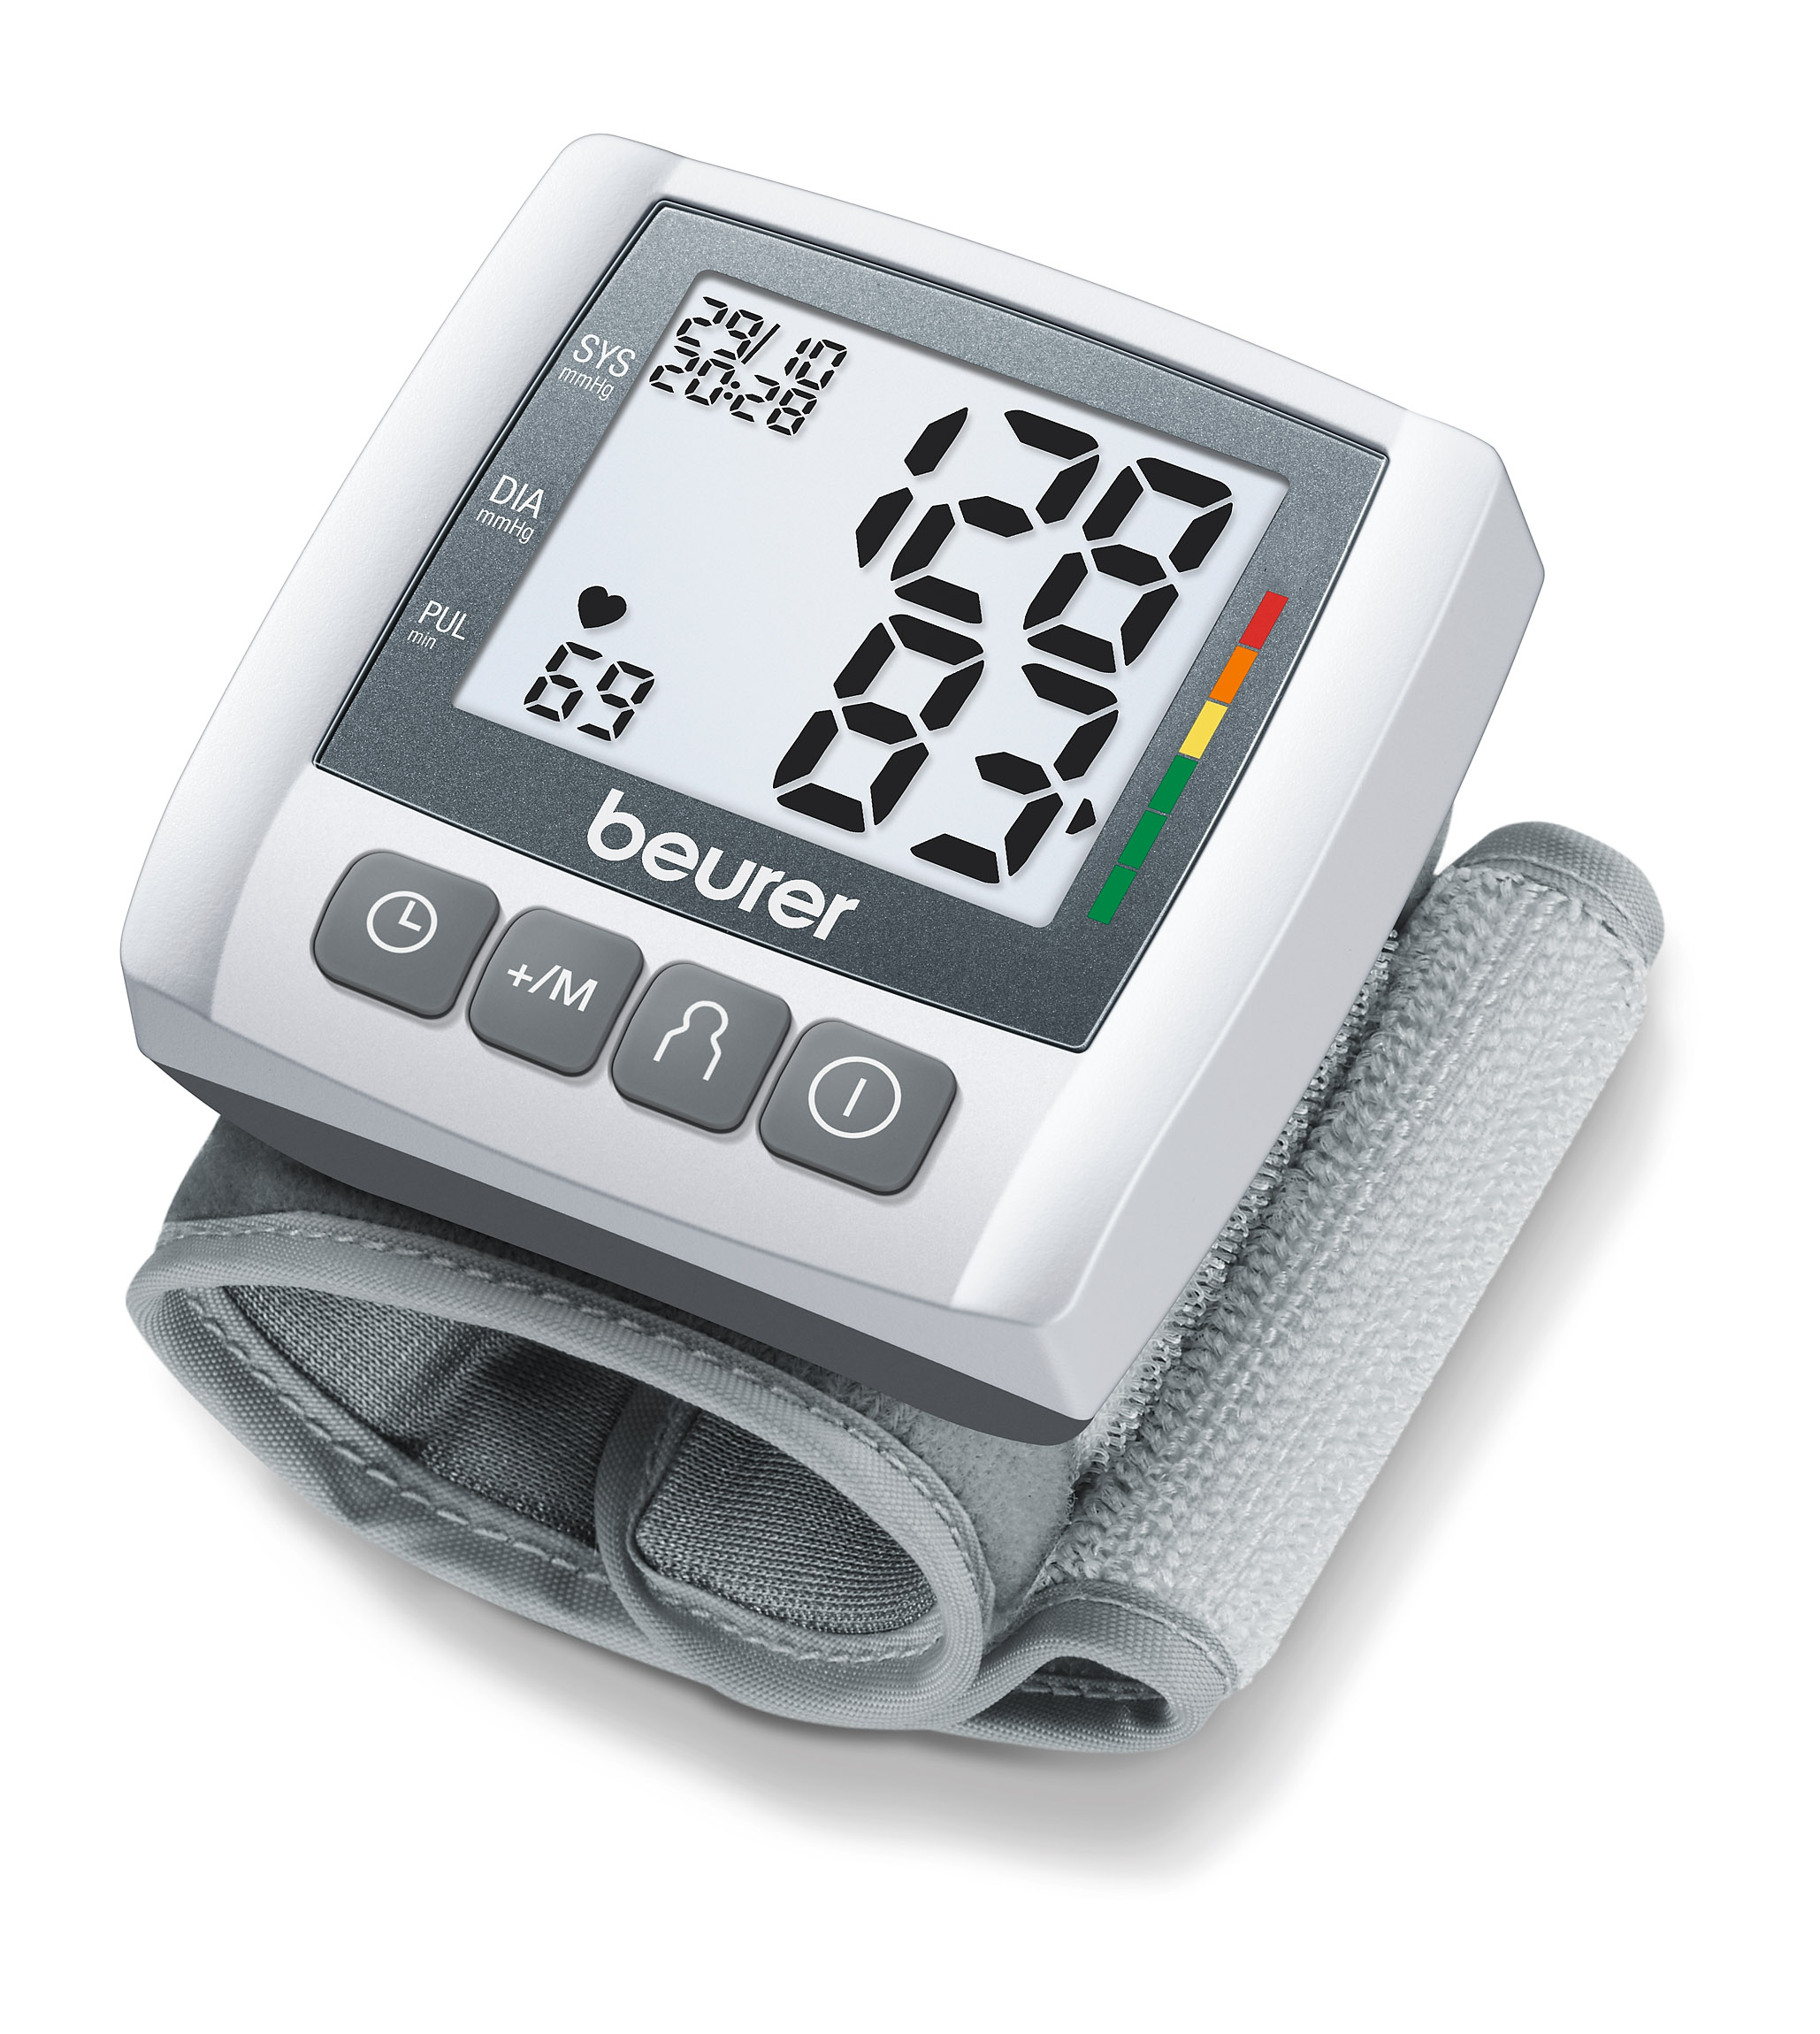 Blood pressure monitor: Type BC 30